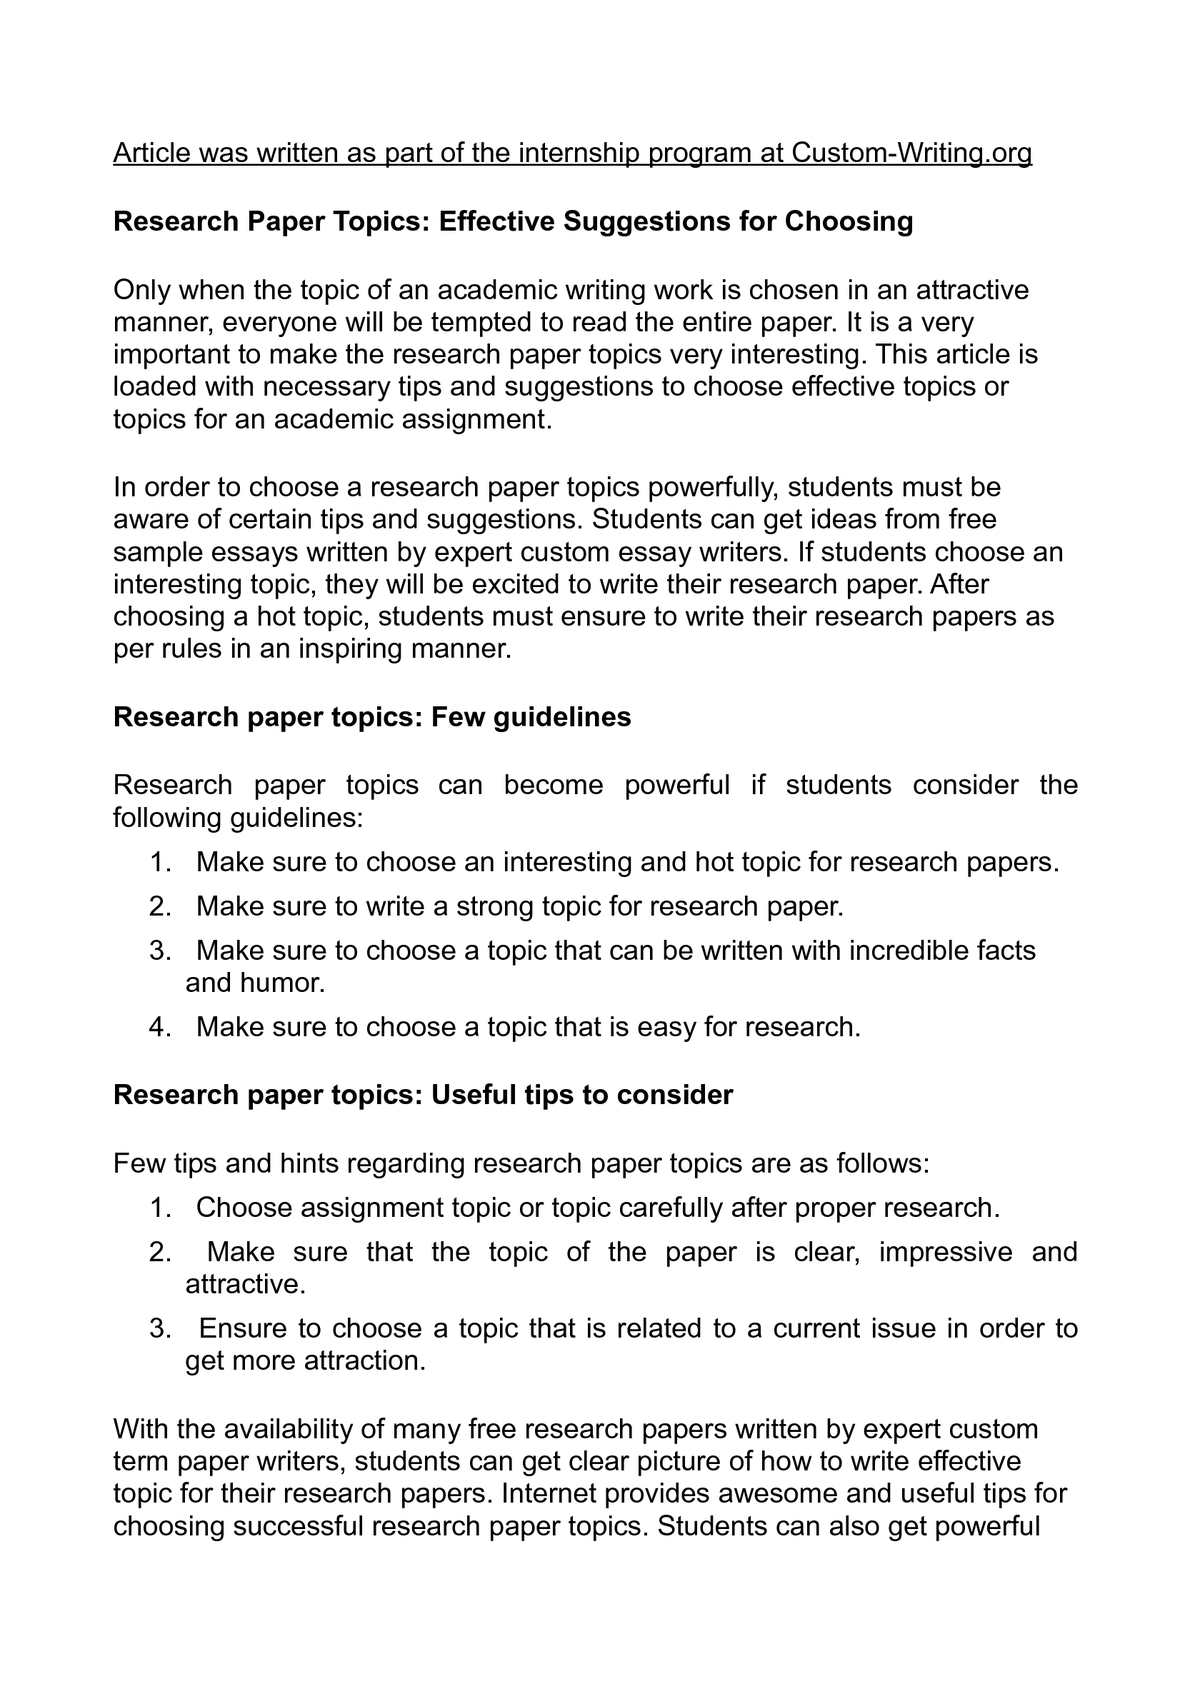 016 Easy Research Paper Topics Fantastic For High School Students Reddit To Write About Full